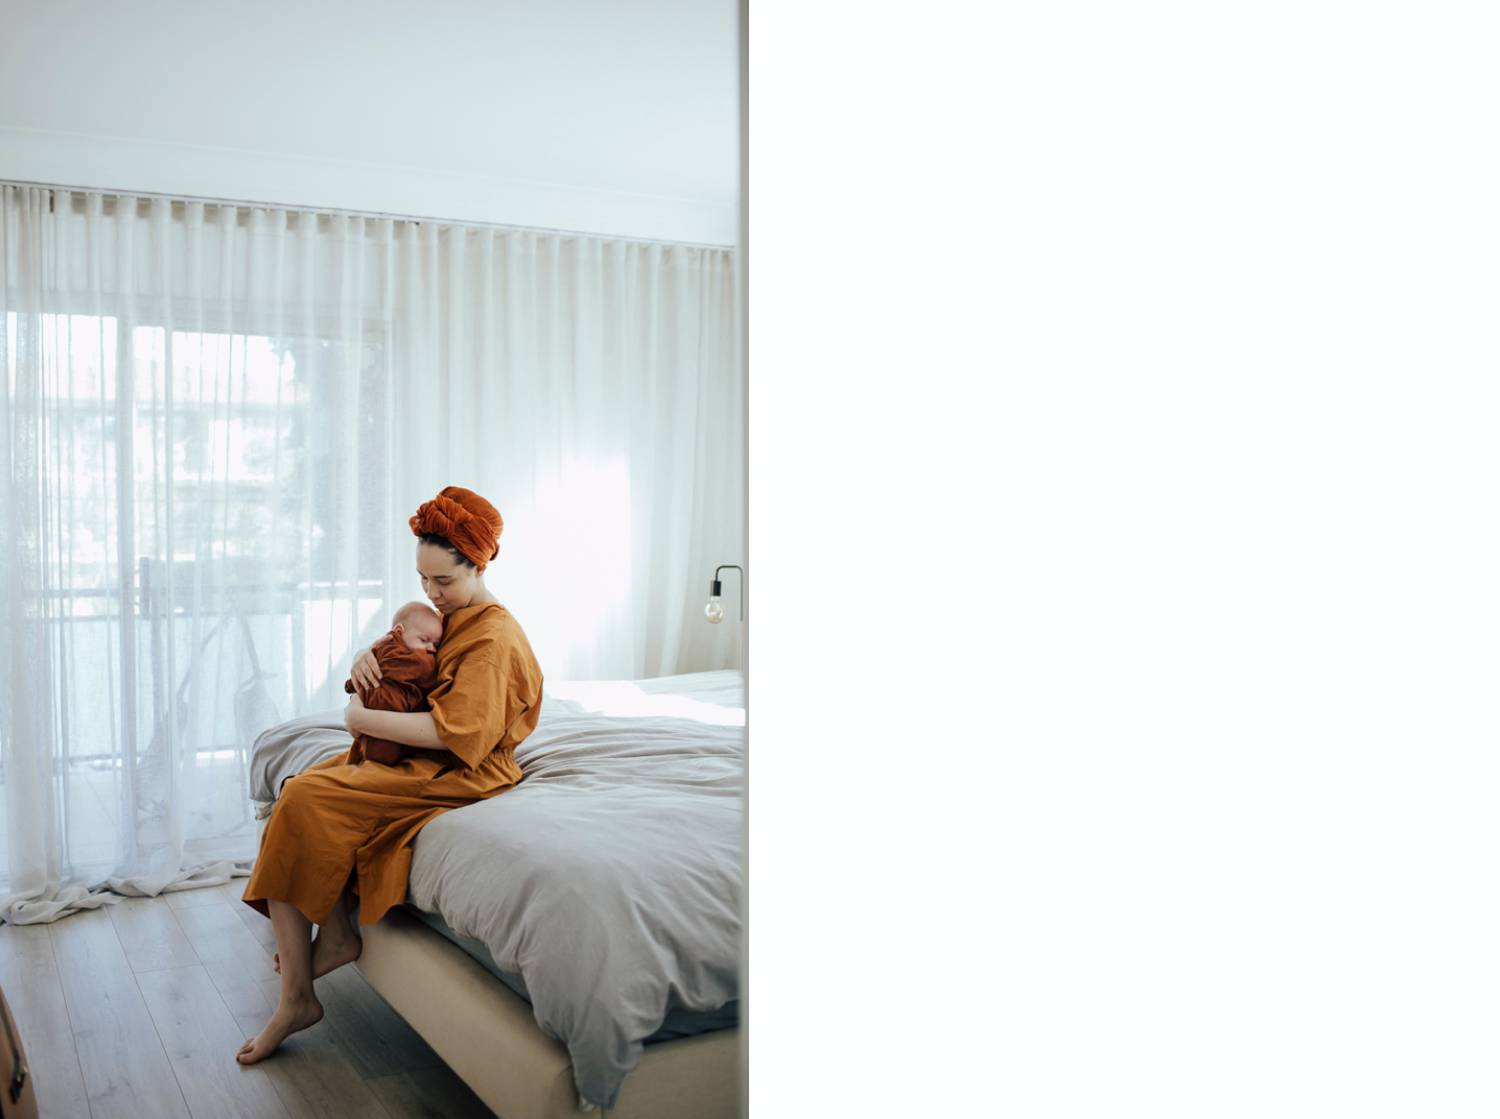 Photo: Martine Payne's simple portrait shows a mom in a yellow robe and orange head wrap snuggling her infant baby close as she sits on the edge of a white bed.